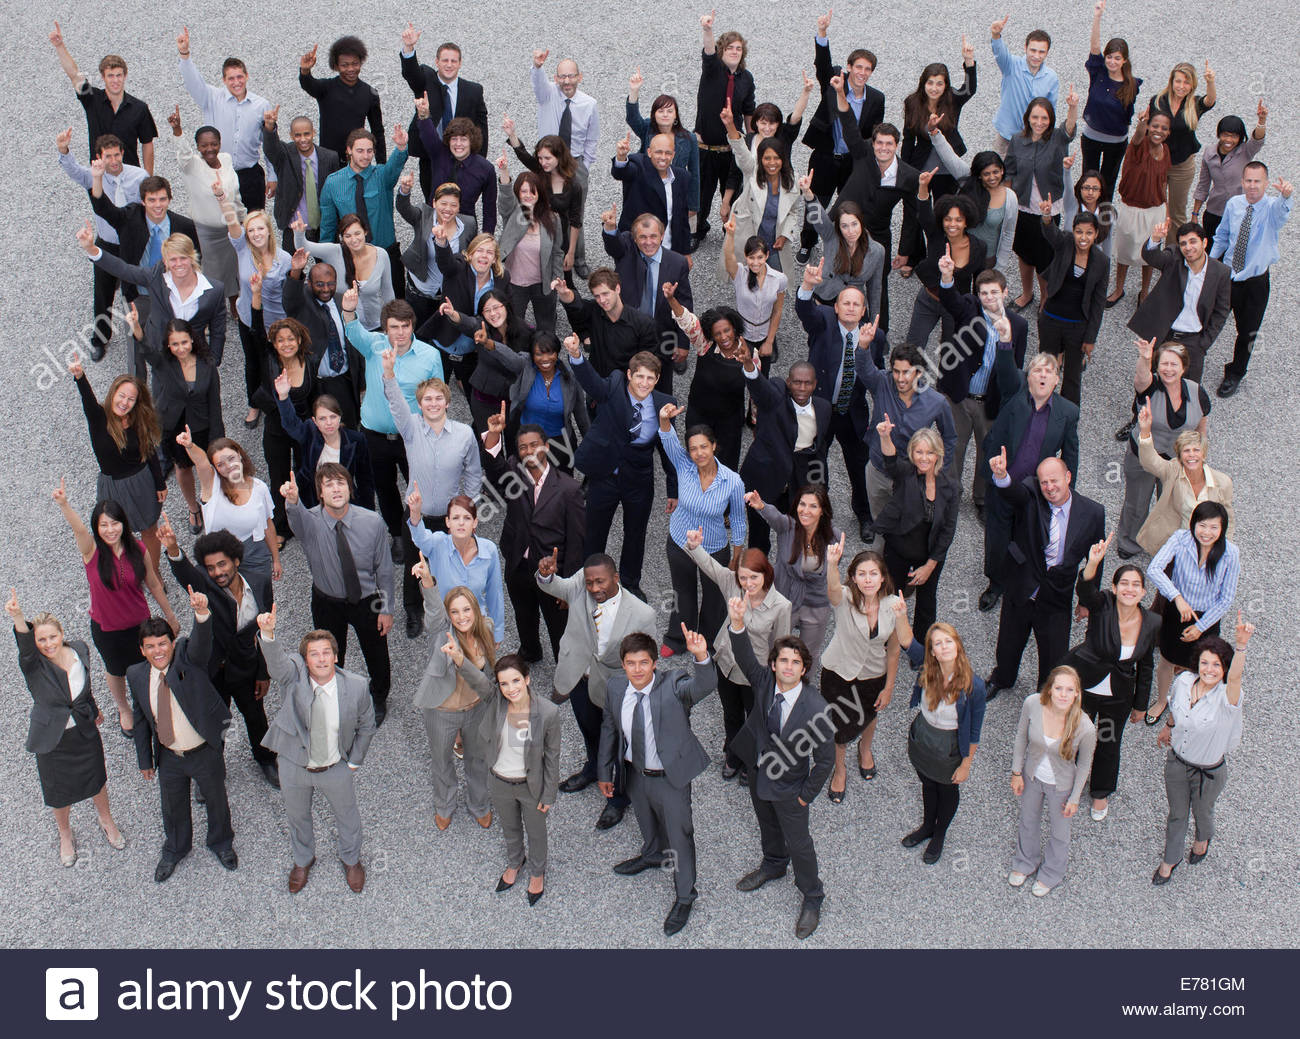 Portrait of smiling and gesturing crowd - Stock Image